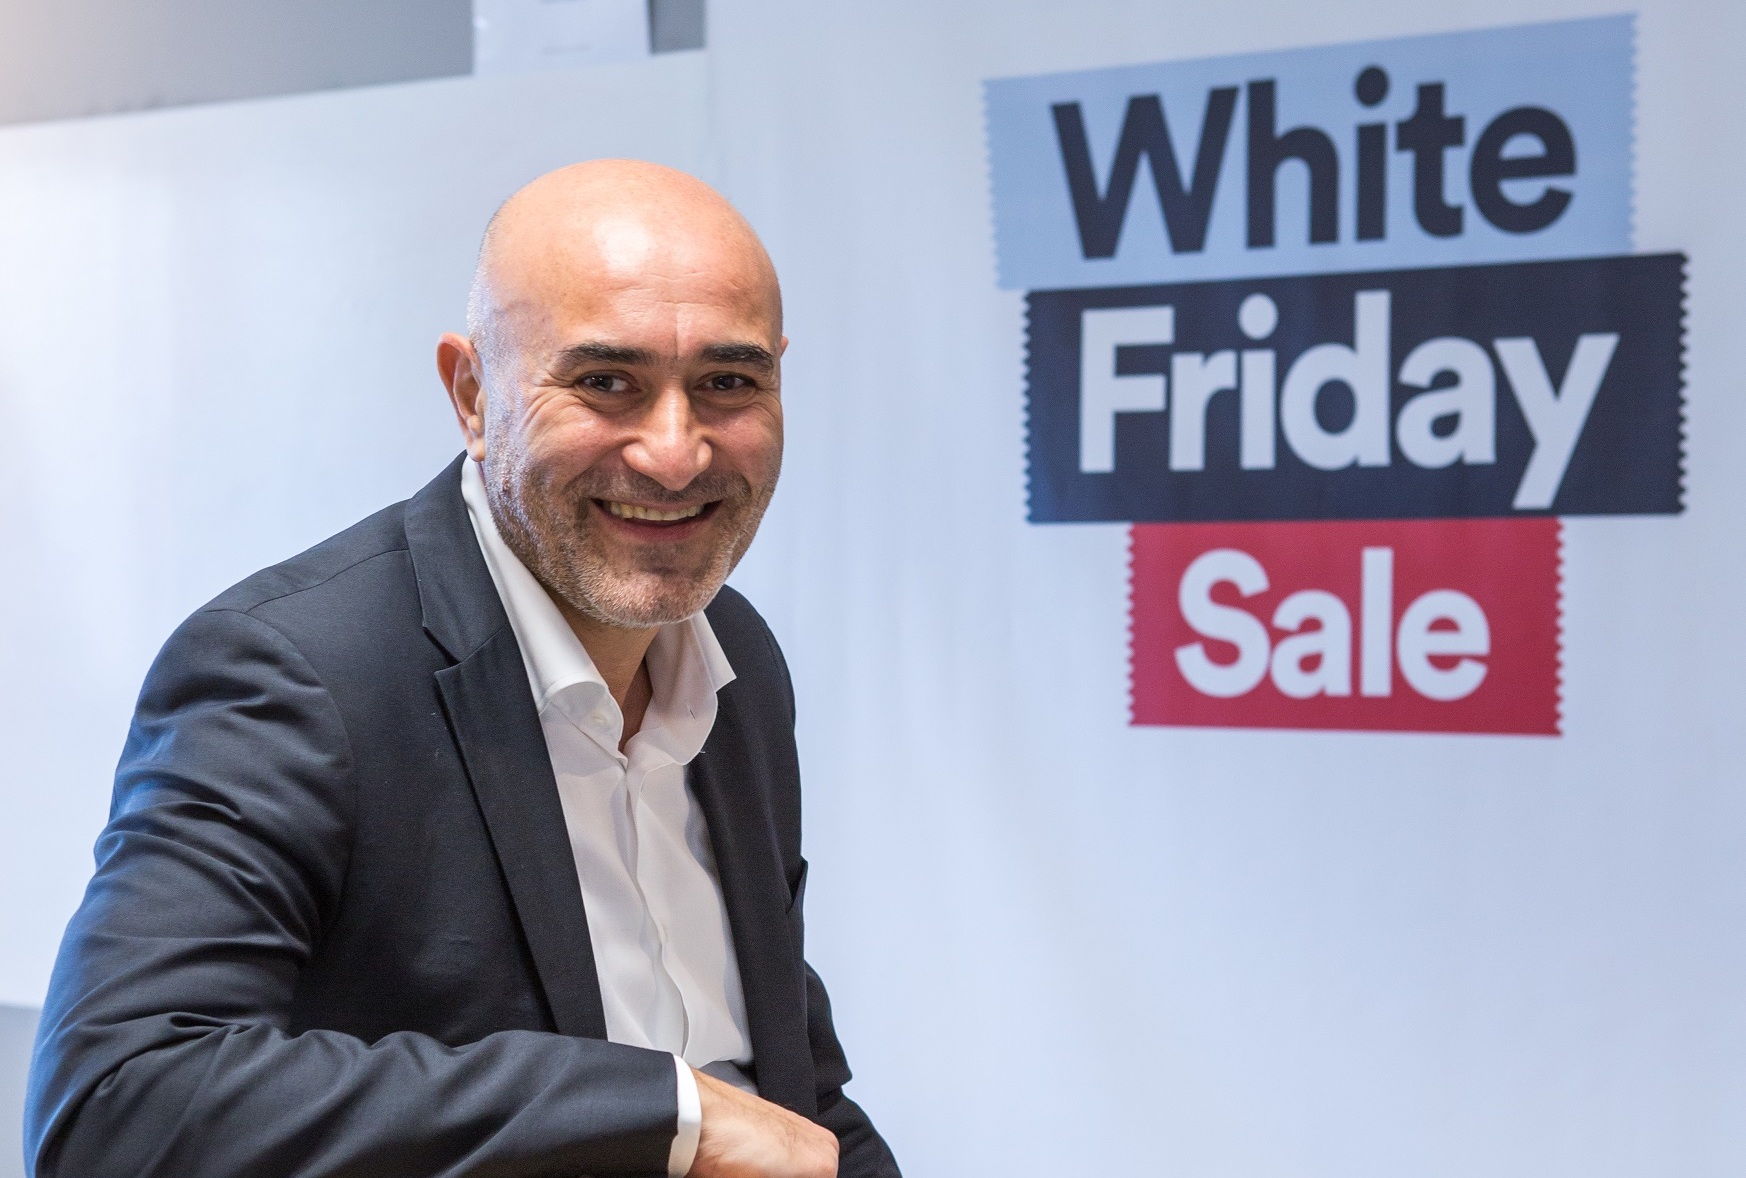 Souq com Announces its Biggest Ever White Friday Sale – Gadget Voize